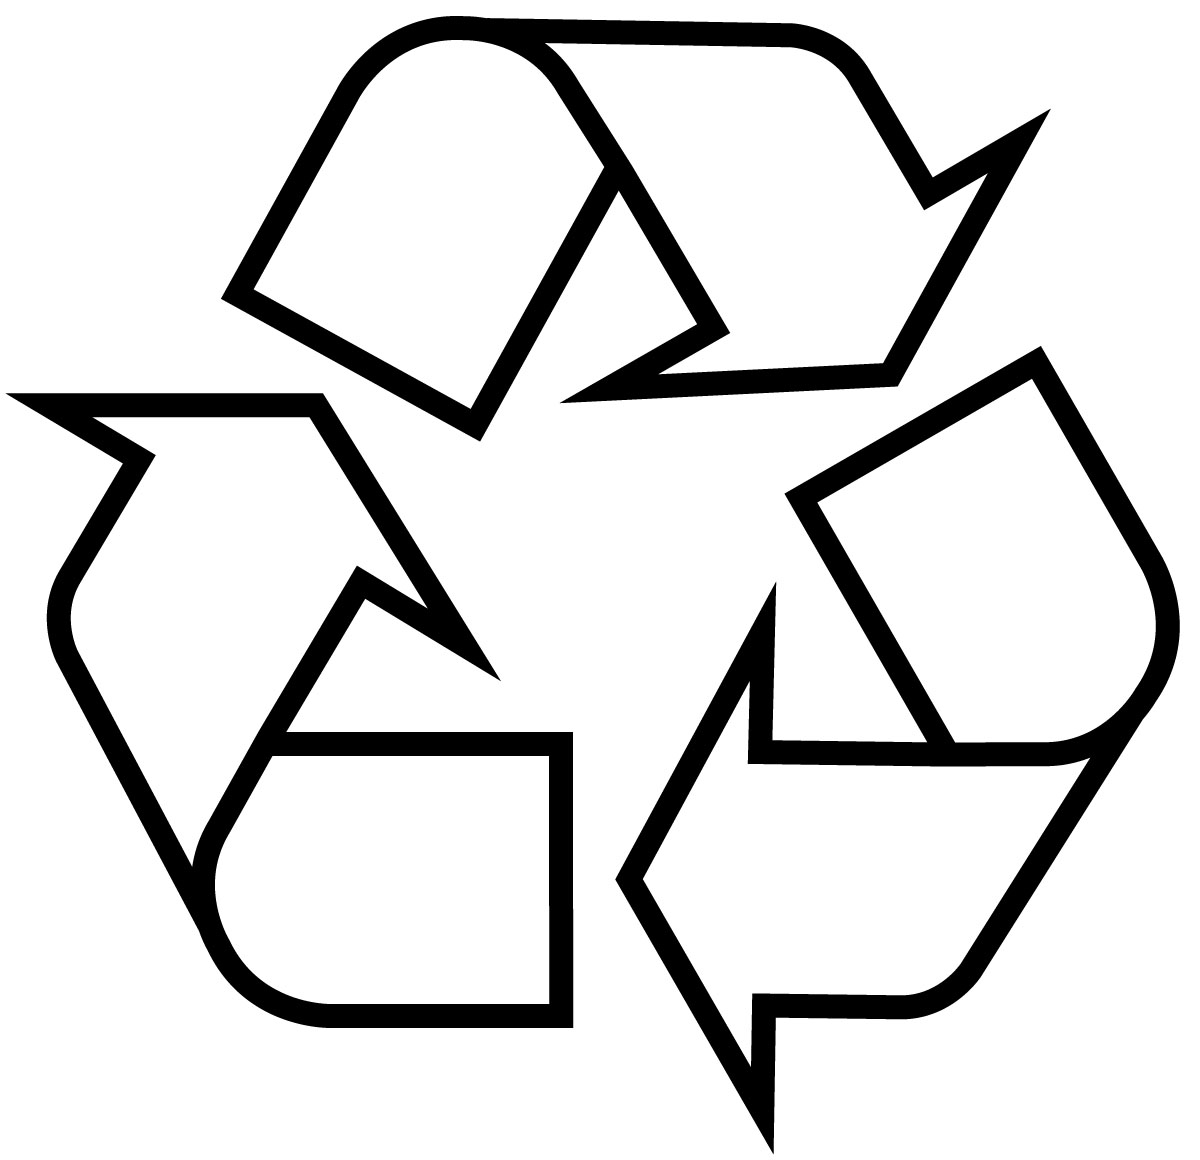 Recycle arrow clipart clipart royalty free library Recycle Arrows | Free Download Clip Art | Free Clip Art | on ... clipart royalty free library